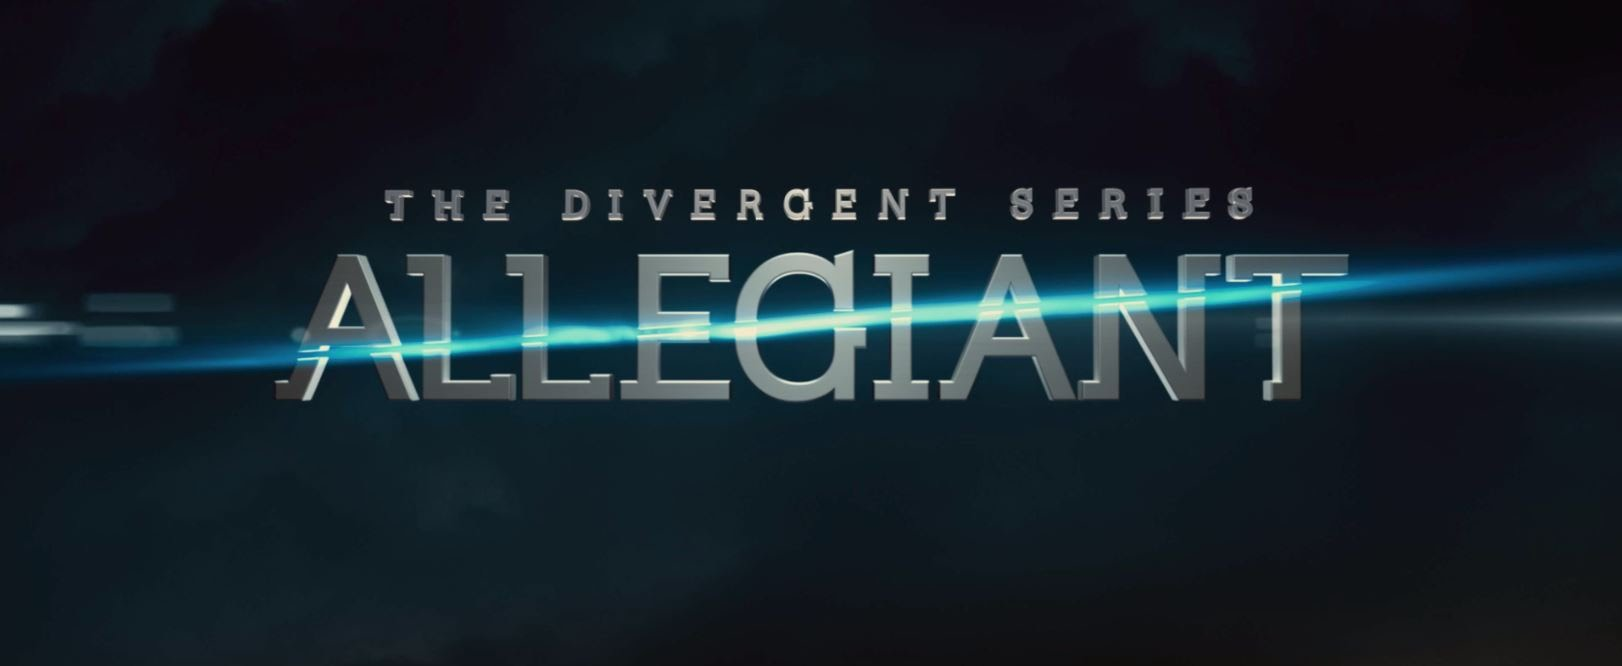 The Divergent Series: Allegiant Movie